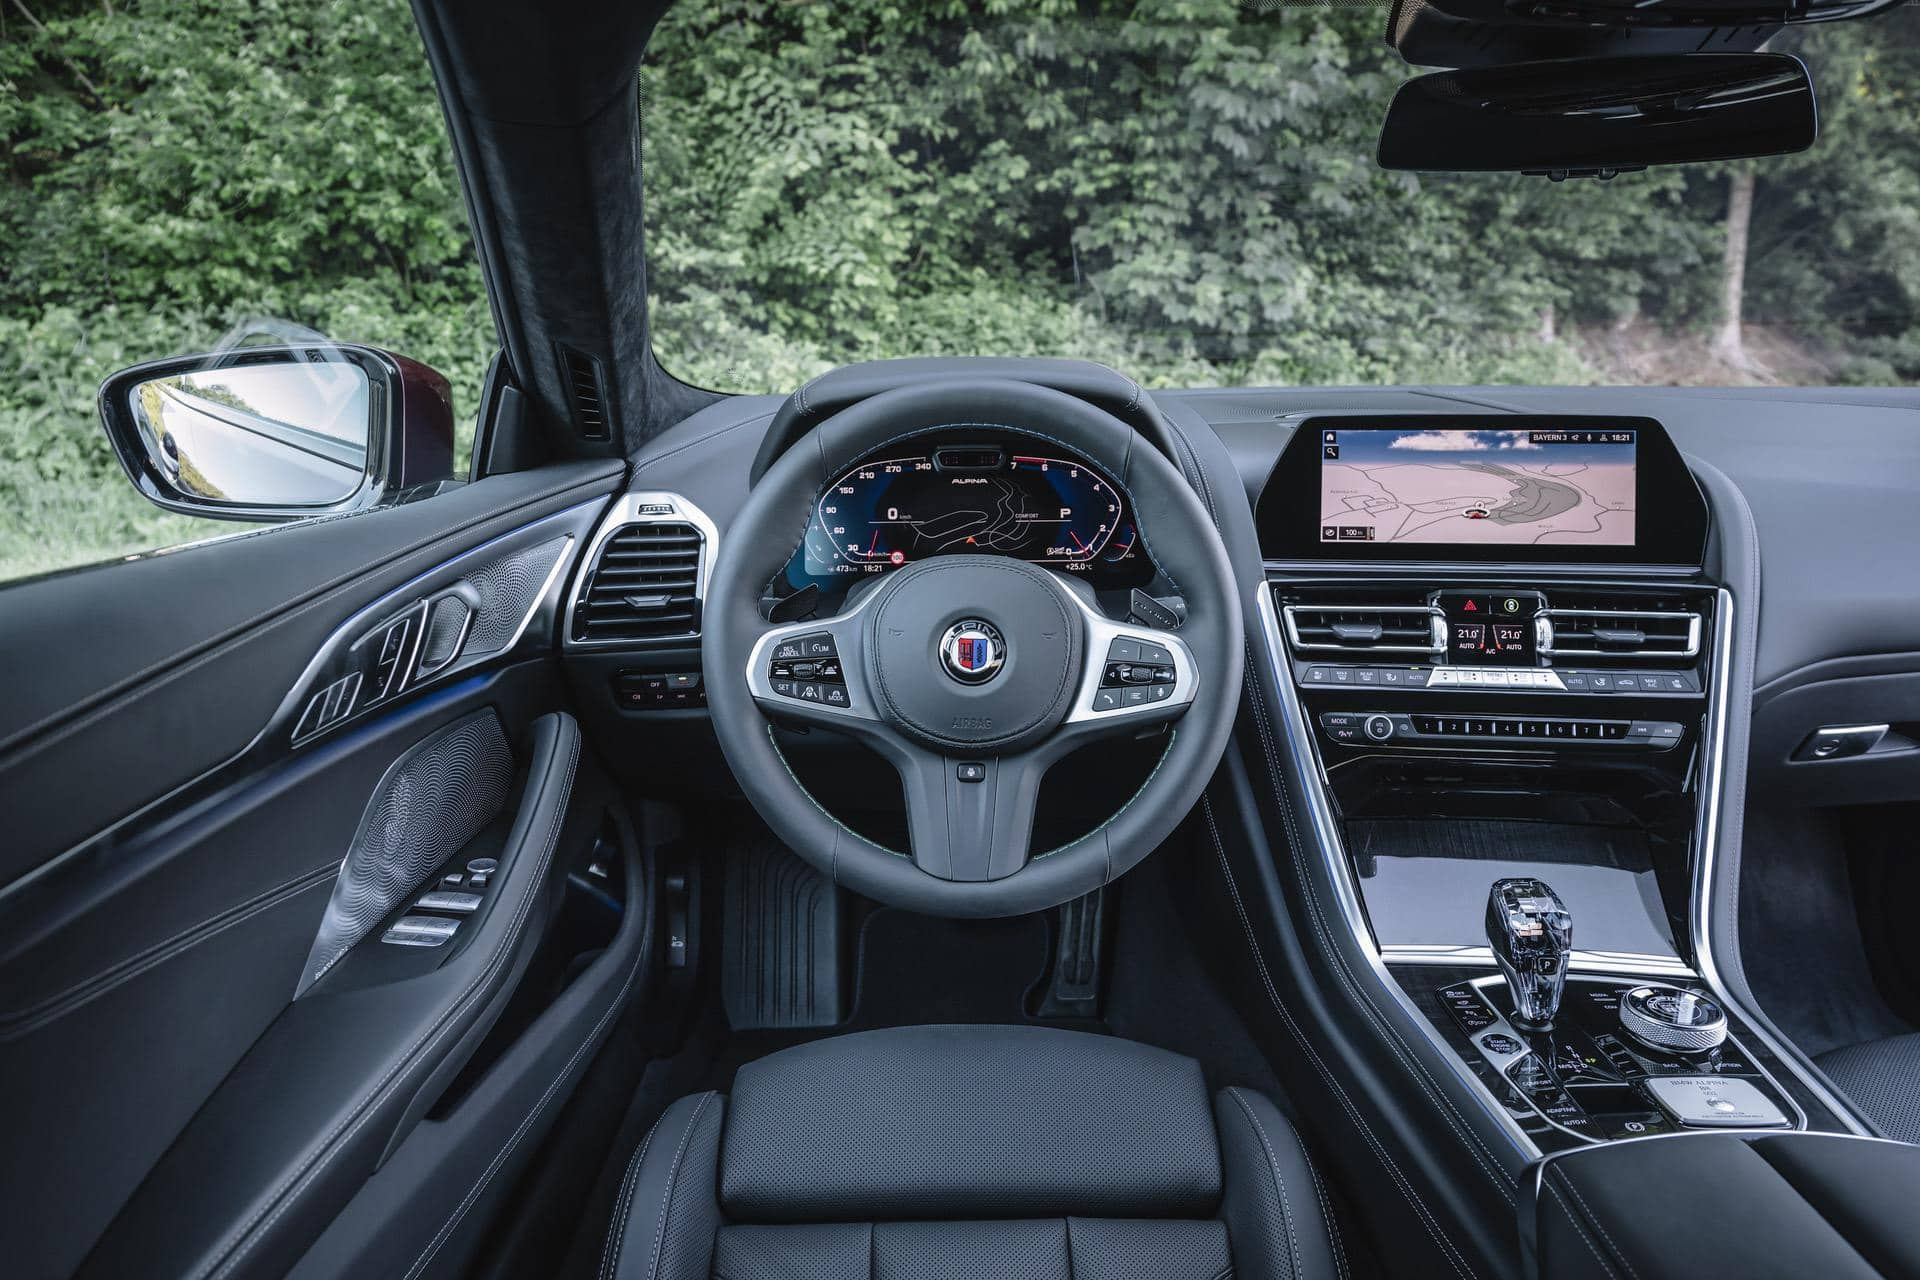 TEST DRIVE: 2021 ALPINA B8 Gran Coupe – The Elegant, Stylish and Crazy Fast Tourer